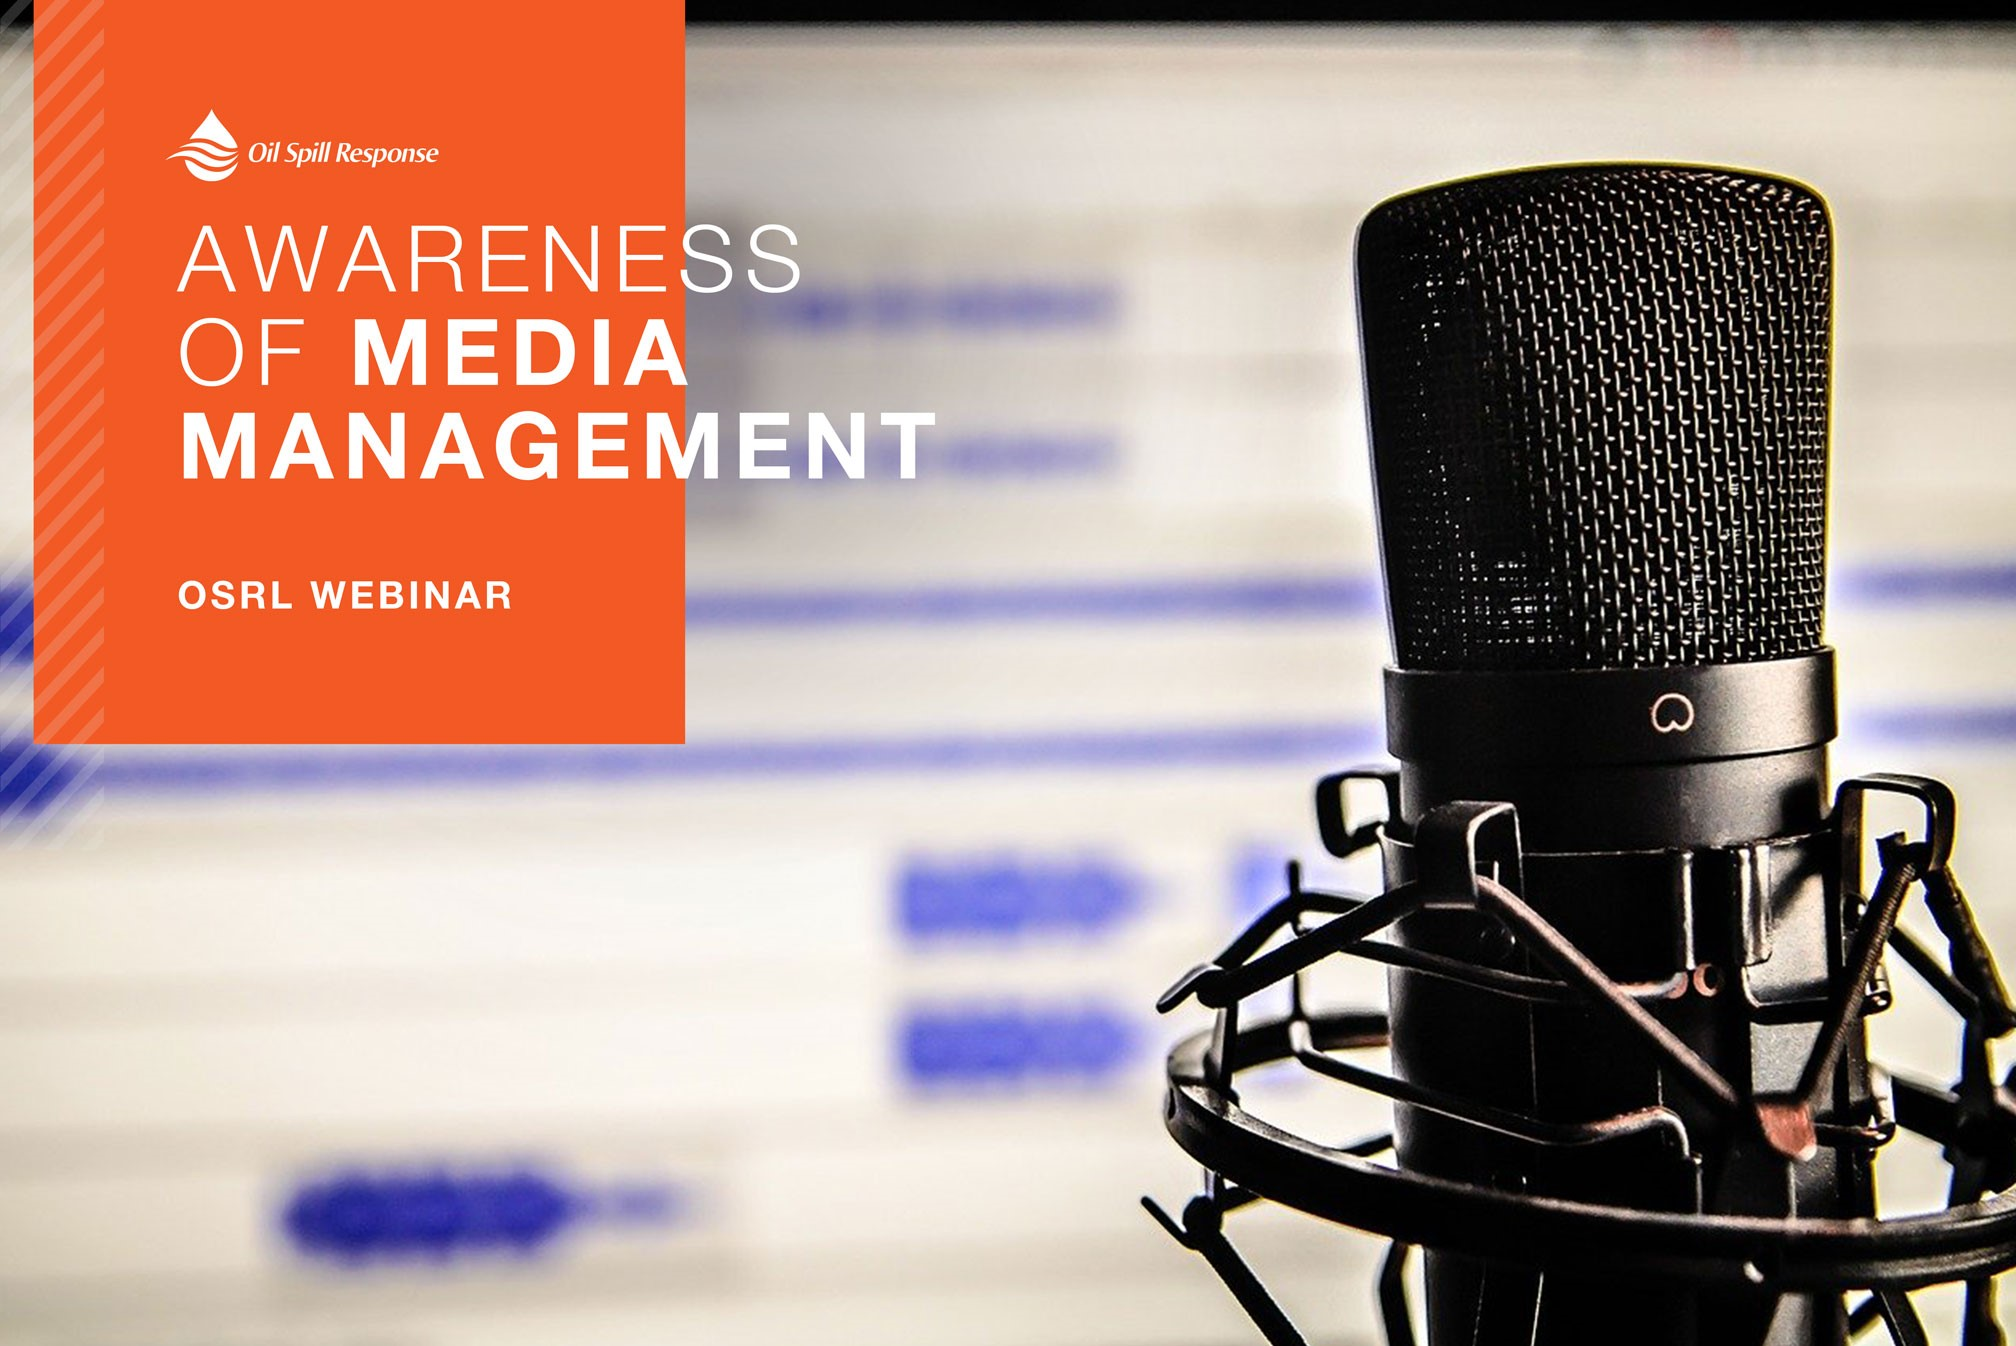 Recorded Webinar - Awareness of Media Management